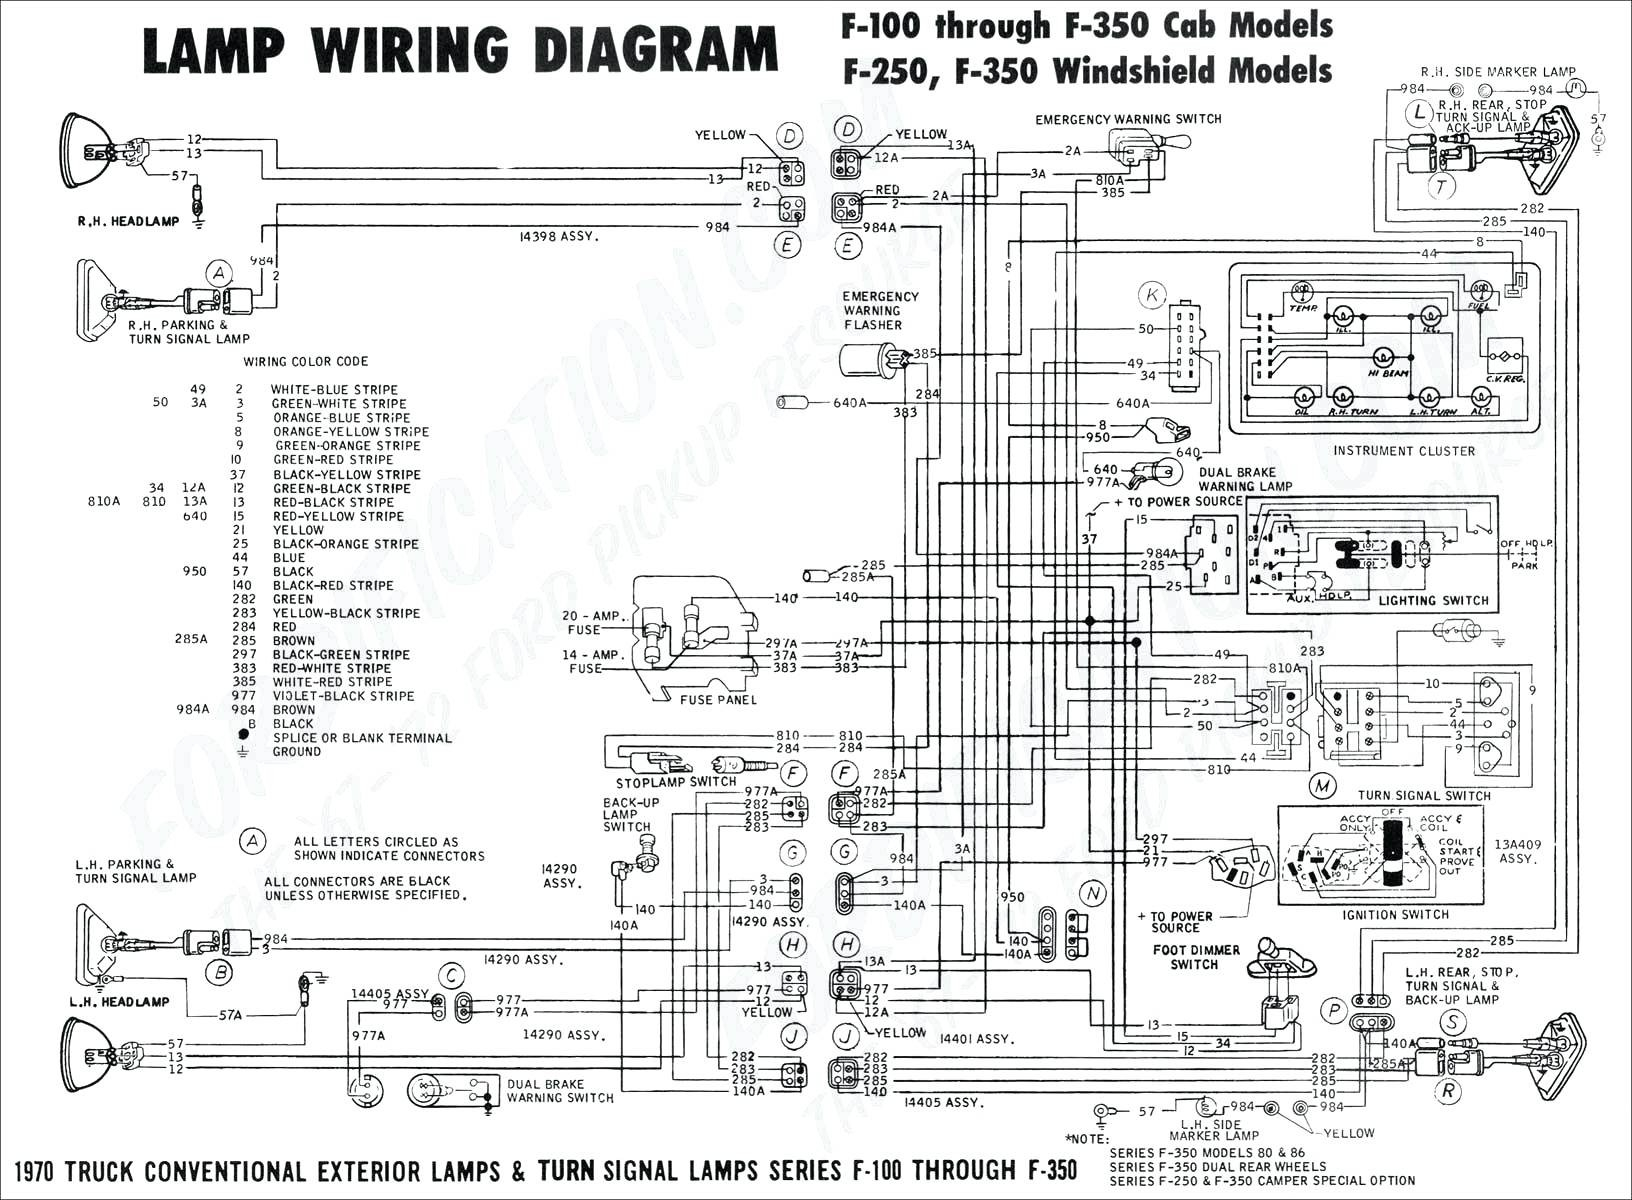 2004 f150 wiring schematic Collection-Wiring Diagram ford F150 Trailer Lights Truck Best ford Engine Diagrams 1997 Ranger Diagram Wiring Harness 9-r